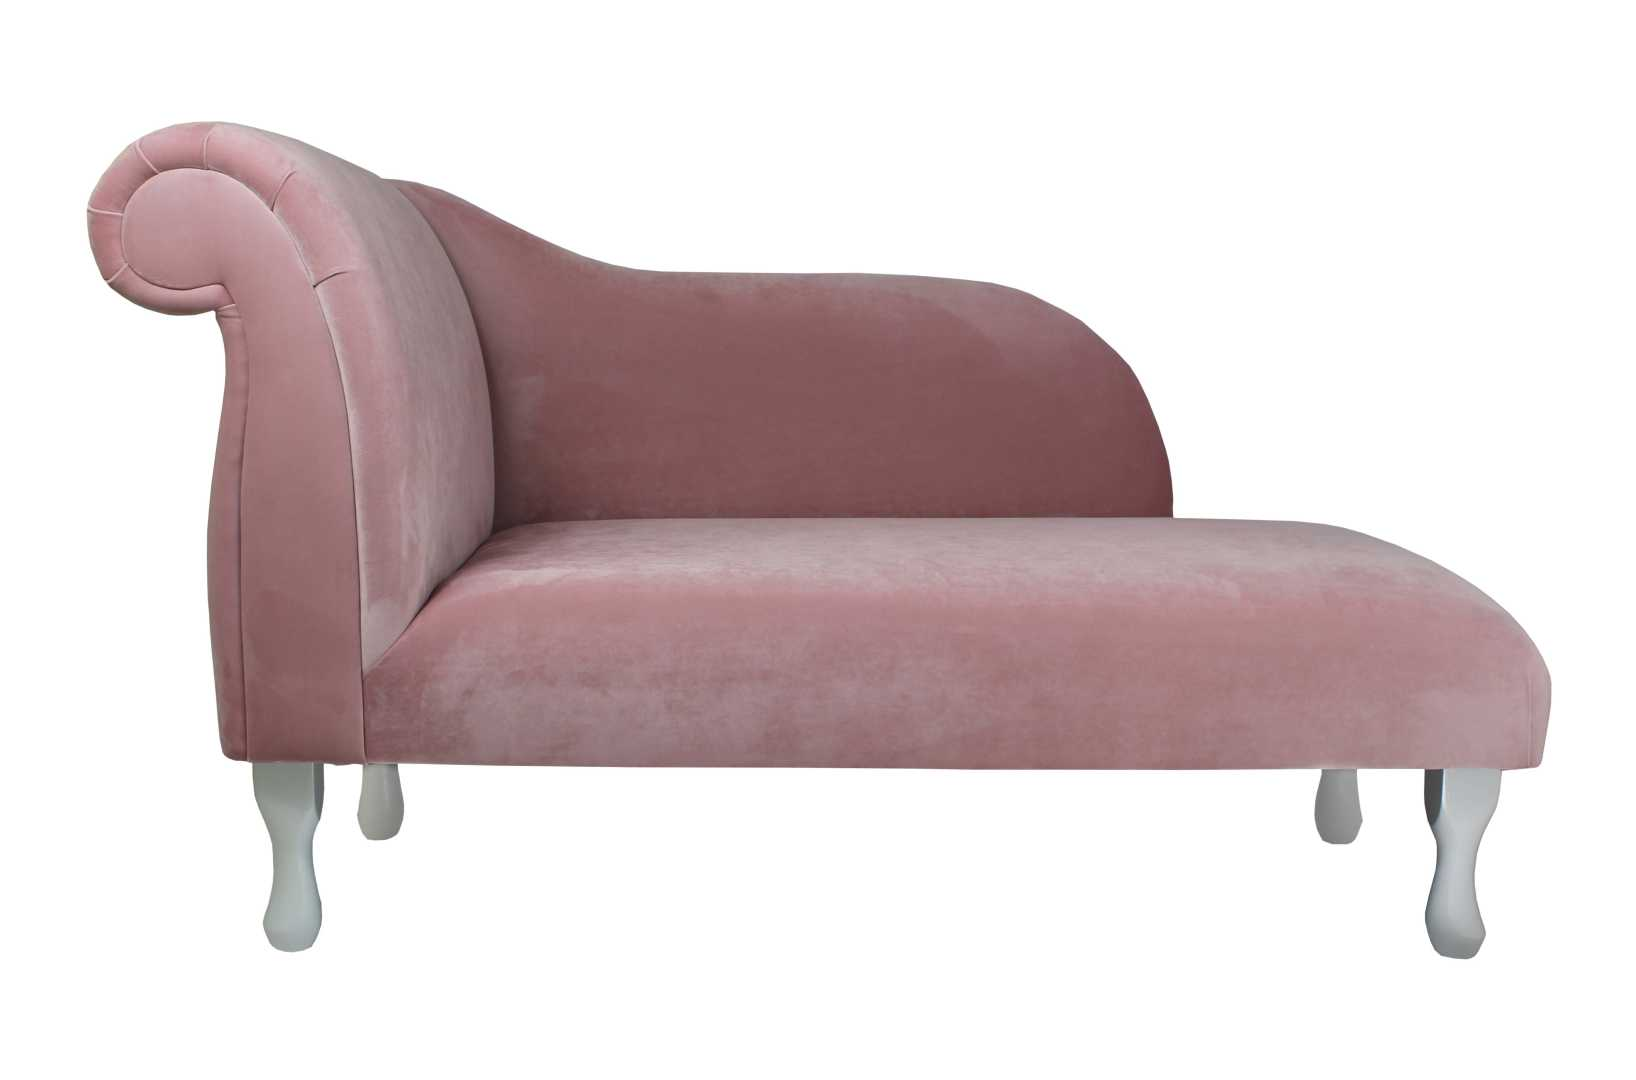 Chaiselongue Recamiere Chaiselongue Recamiere Puderpink